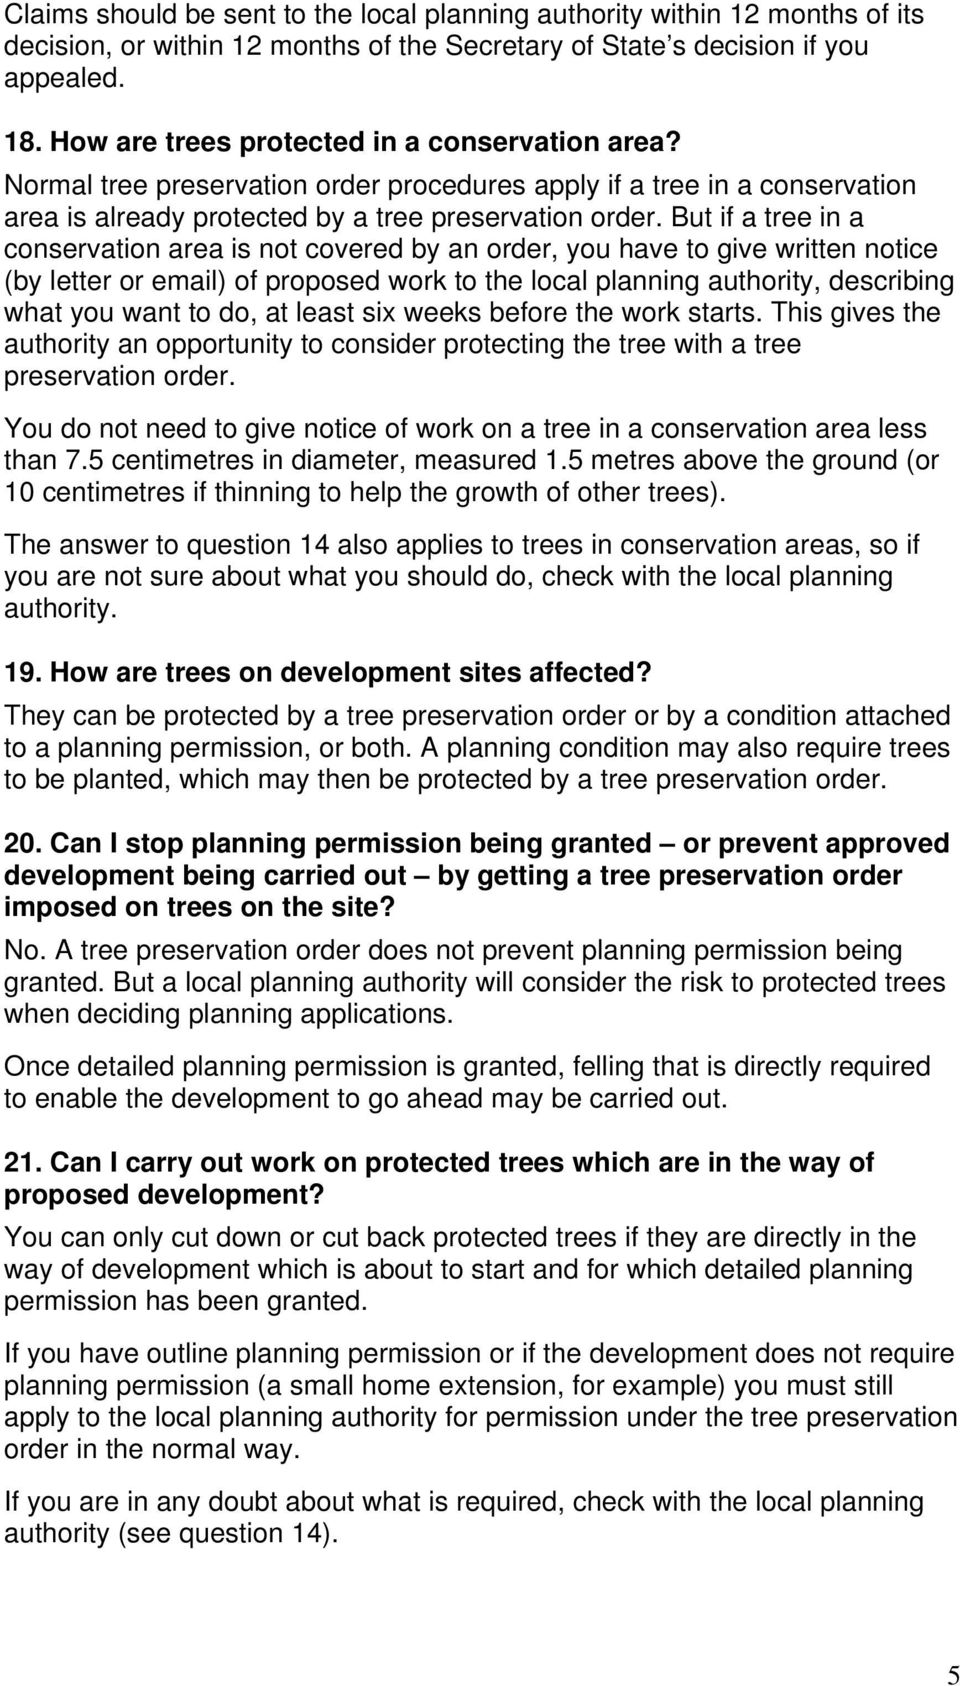 But if a tree in a conservation area is not covered by an order, you have to give written notice (by letter or email) of proposed work to the local planning authority, describing what you want to do,